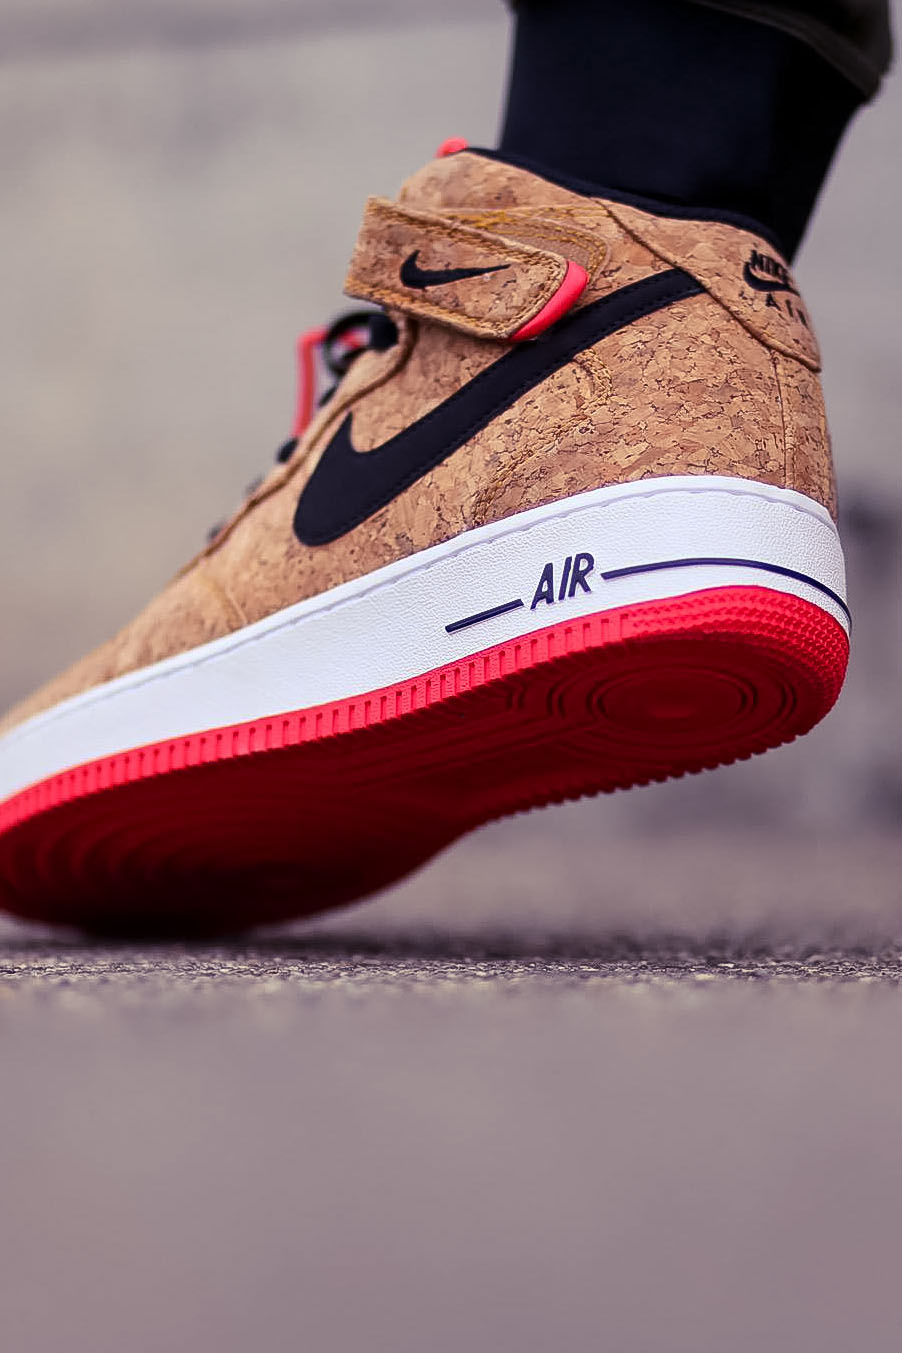 Nike Air Force 1 Mid Cork Sole Shot Soletopia